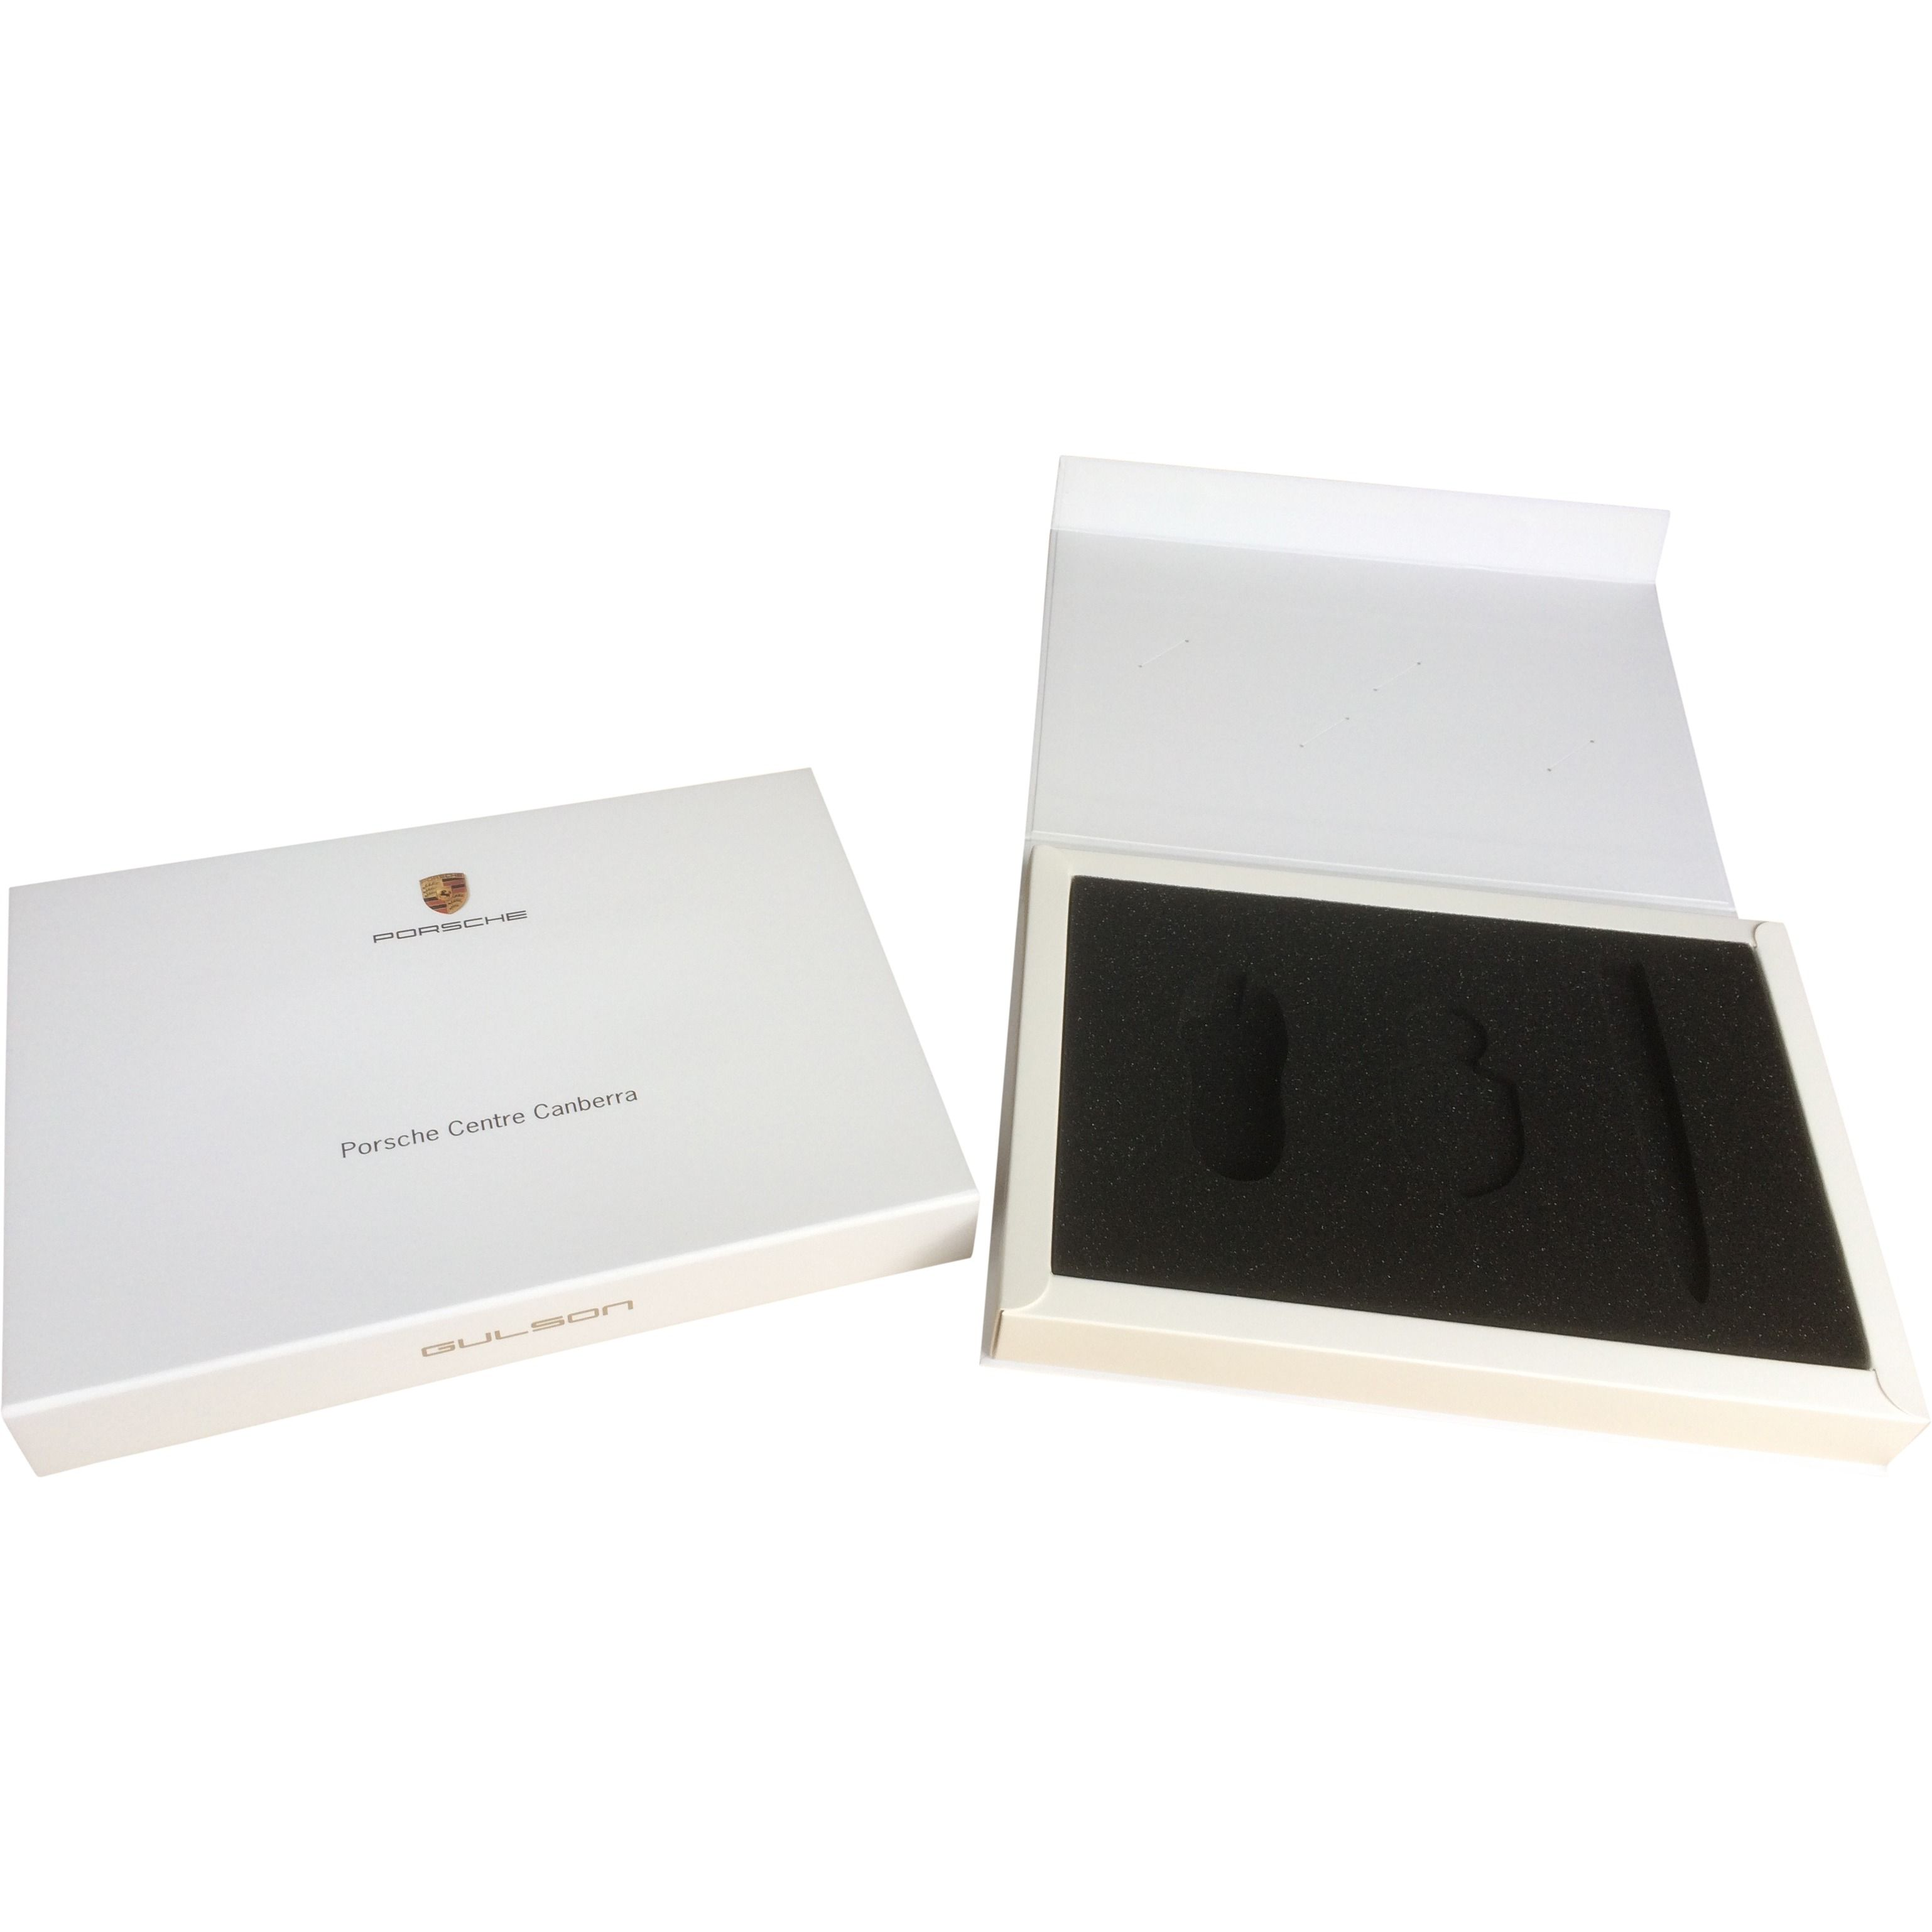 Presentation Gift Box For Luxury Brand With Die Cut Foam Insert